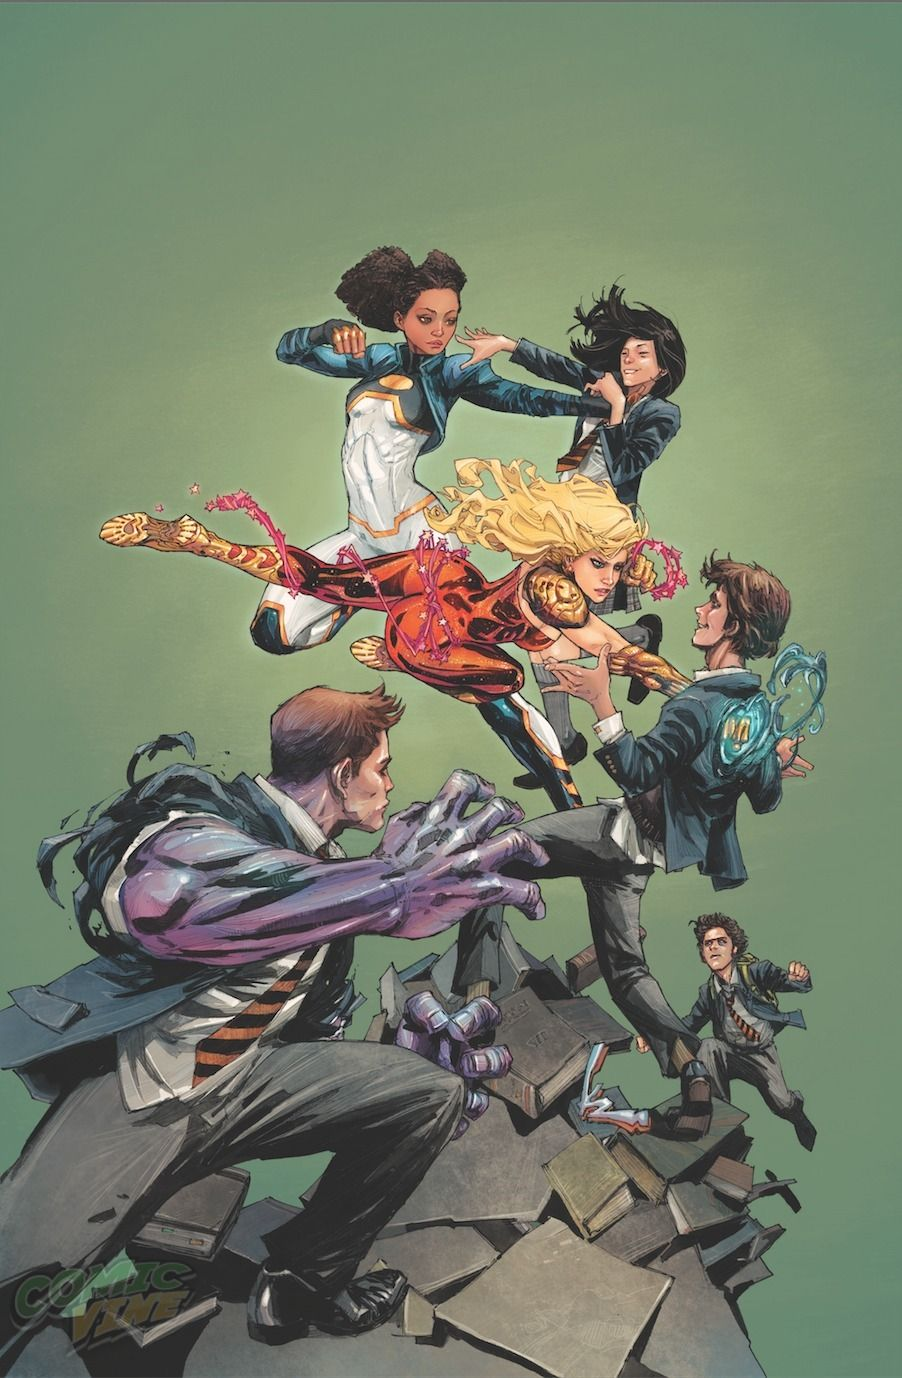 Exclusive Cover Reveal: TEEN TITANS #5 by Kenneth Rocafort